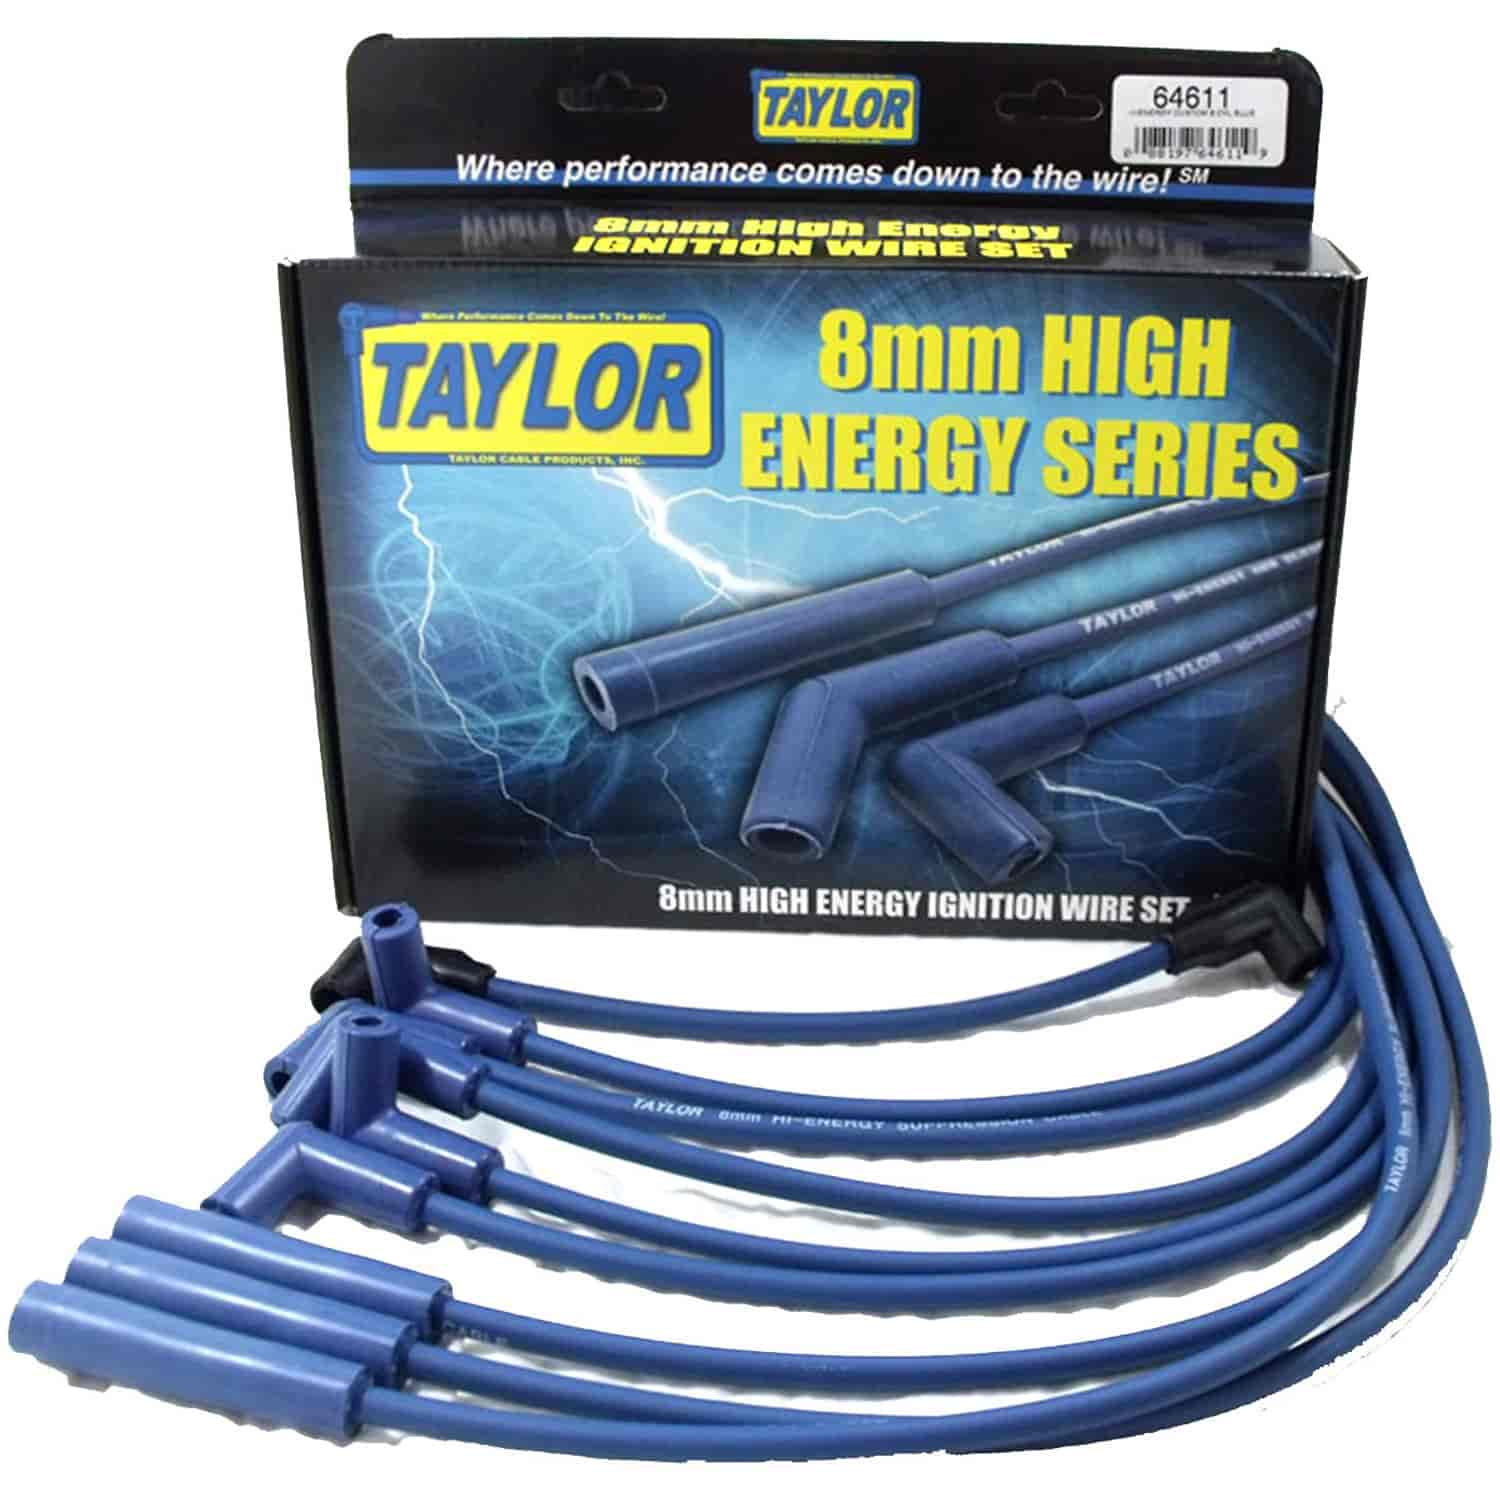 Taylor 64611: High Energy 8mm Spark Plug Wire Set 1987